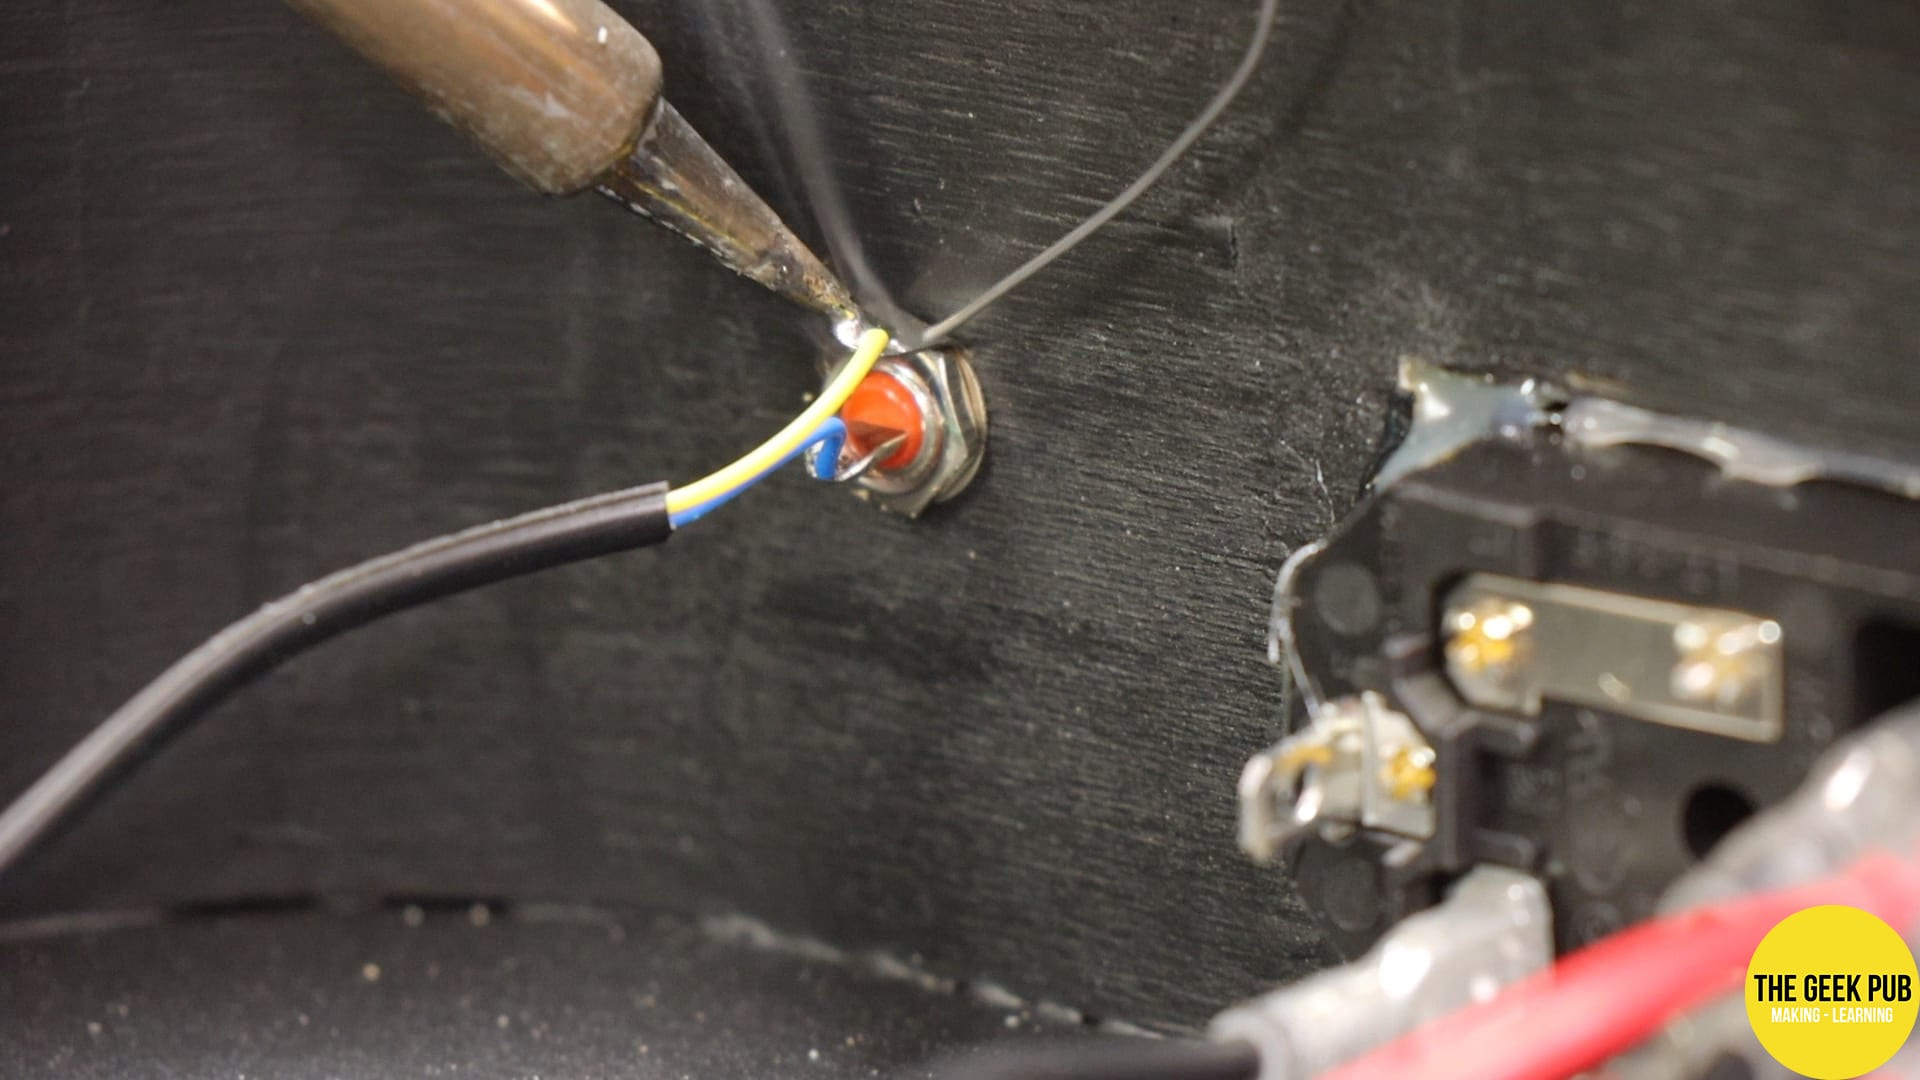 Soldering the RCA video output